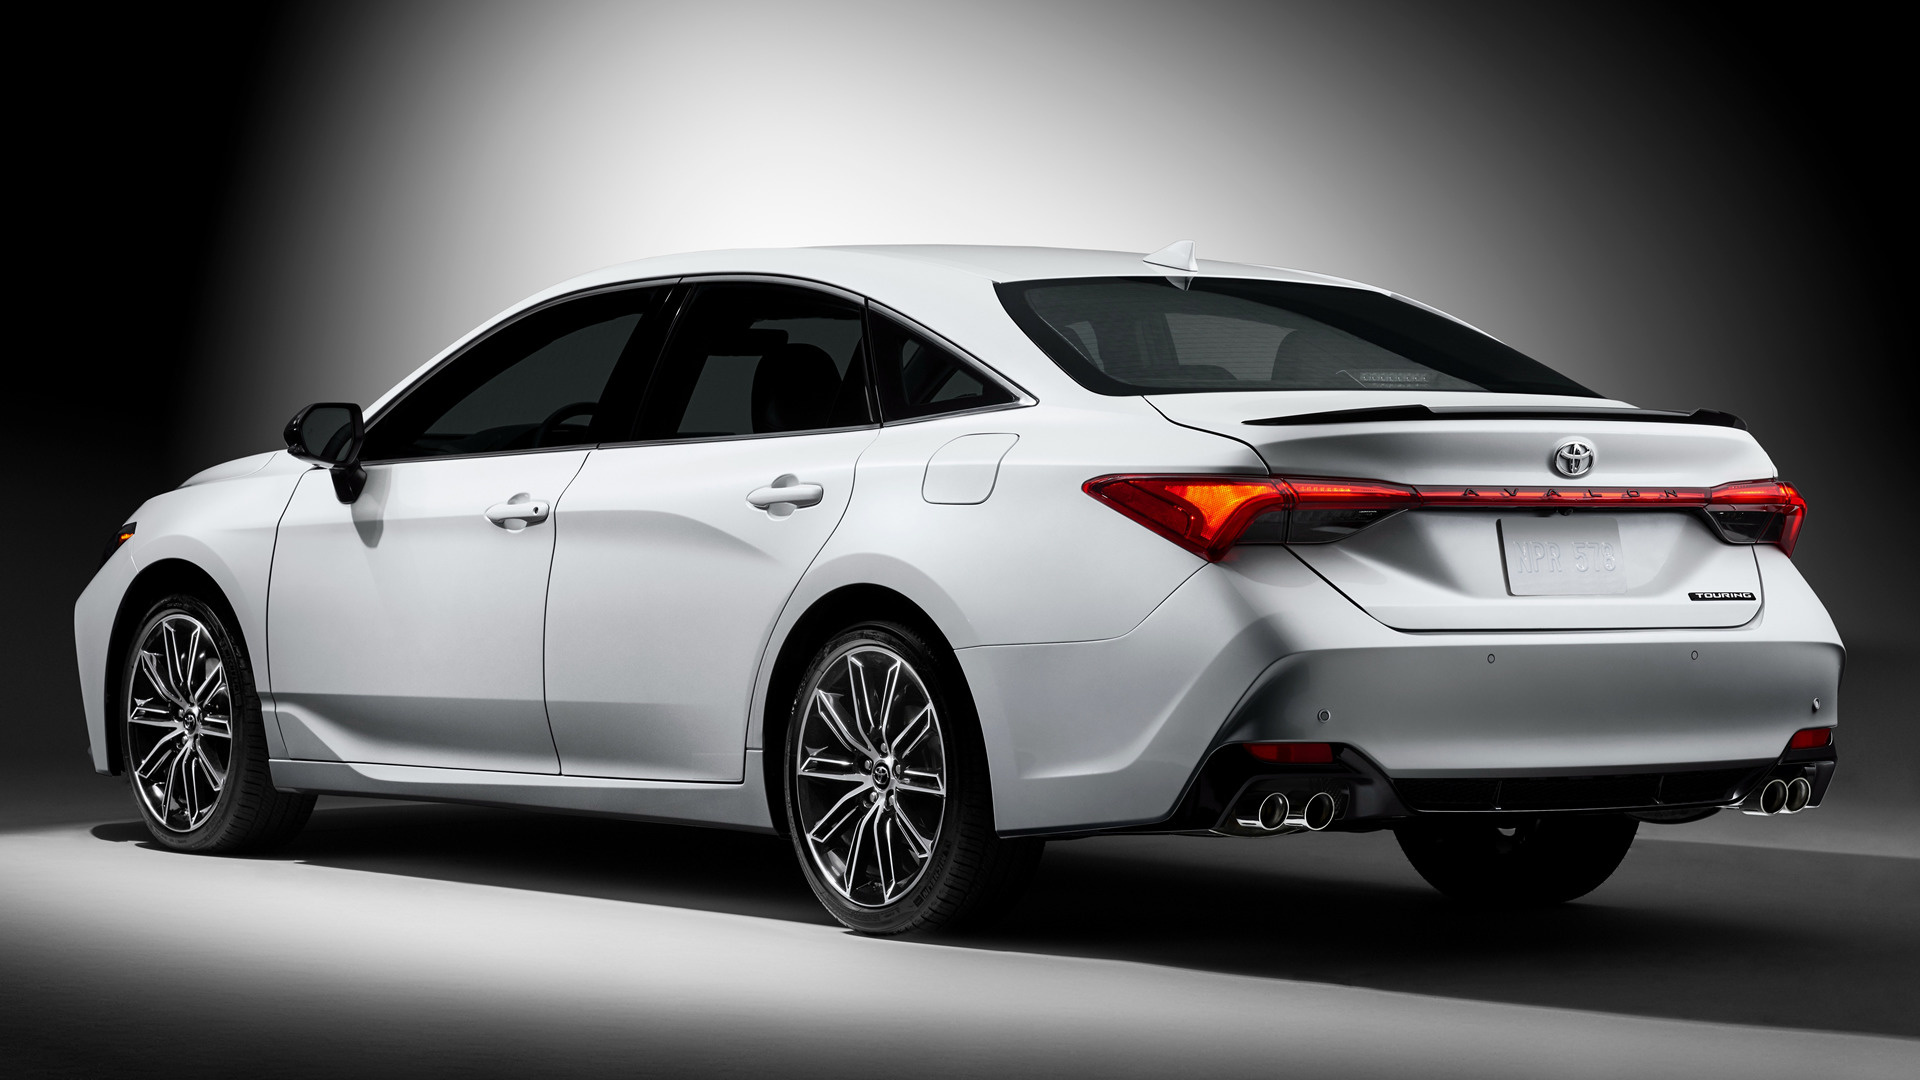 S L besides D Toyota Camry Trd Supercharger Will It Fit I B L likewise Toyota Avalon Sport Styling Wallpaper Hd likewise Toyotacorollasedan besides F. on 97 toyota avalon